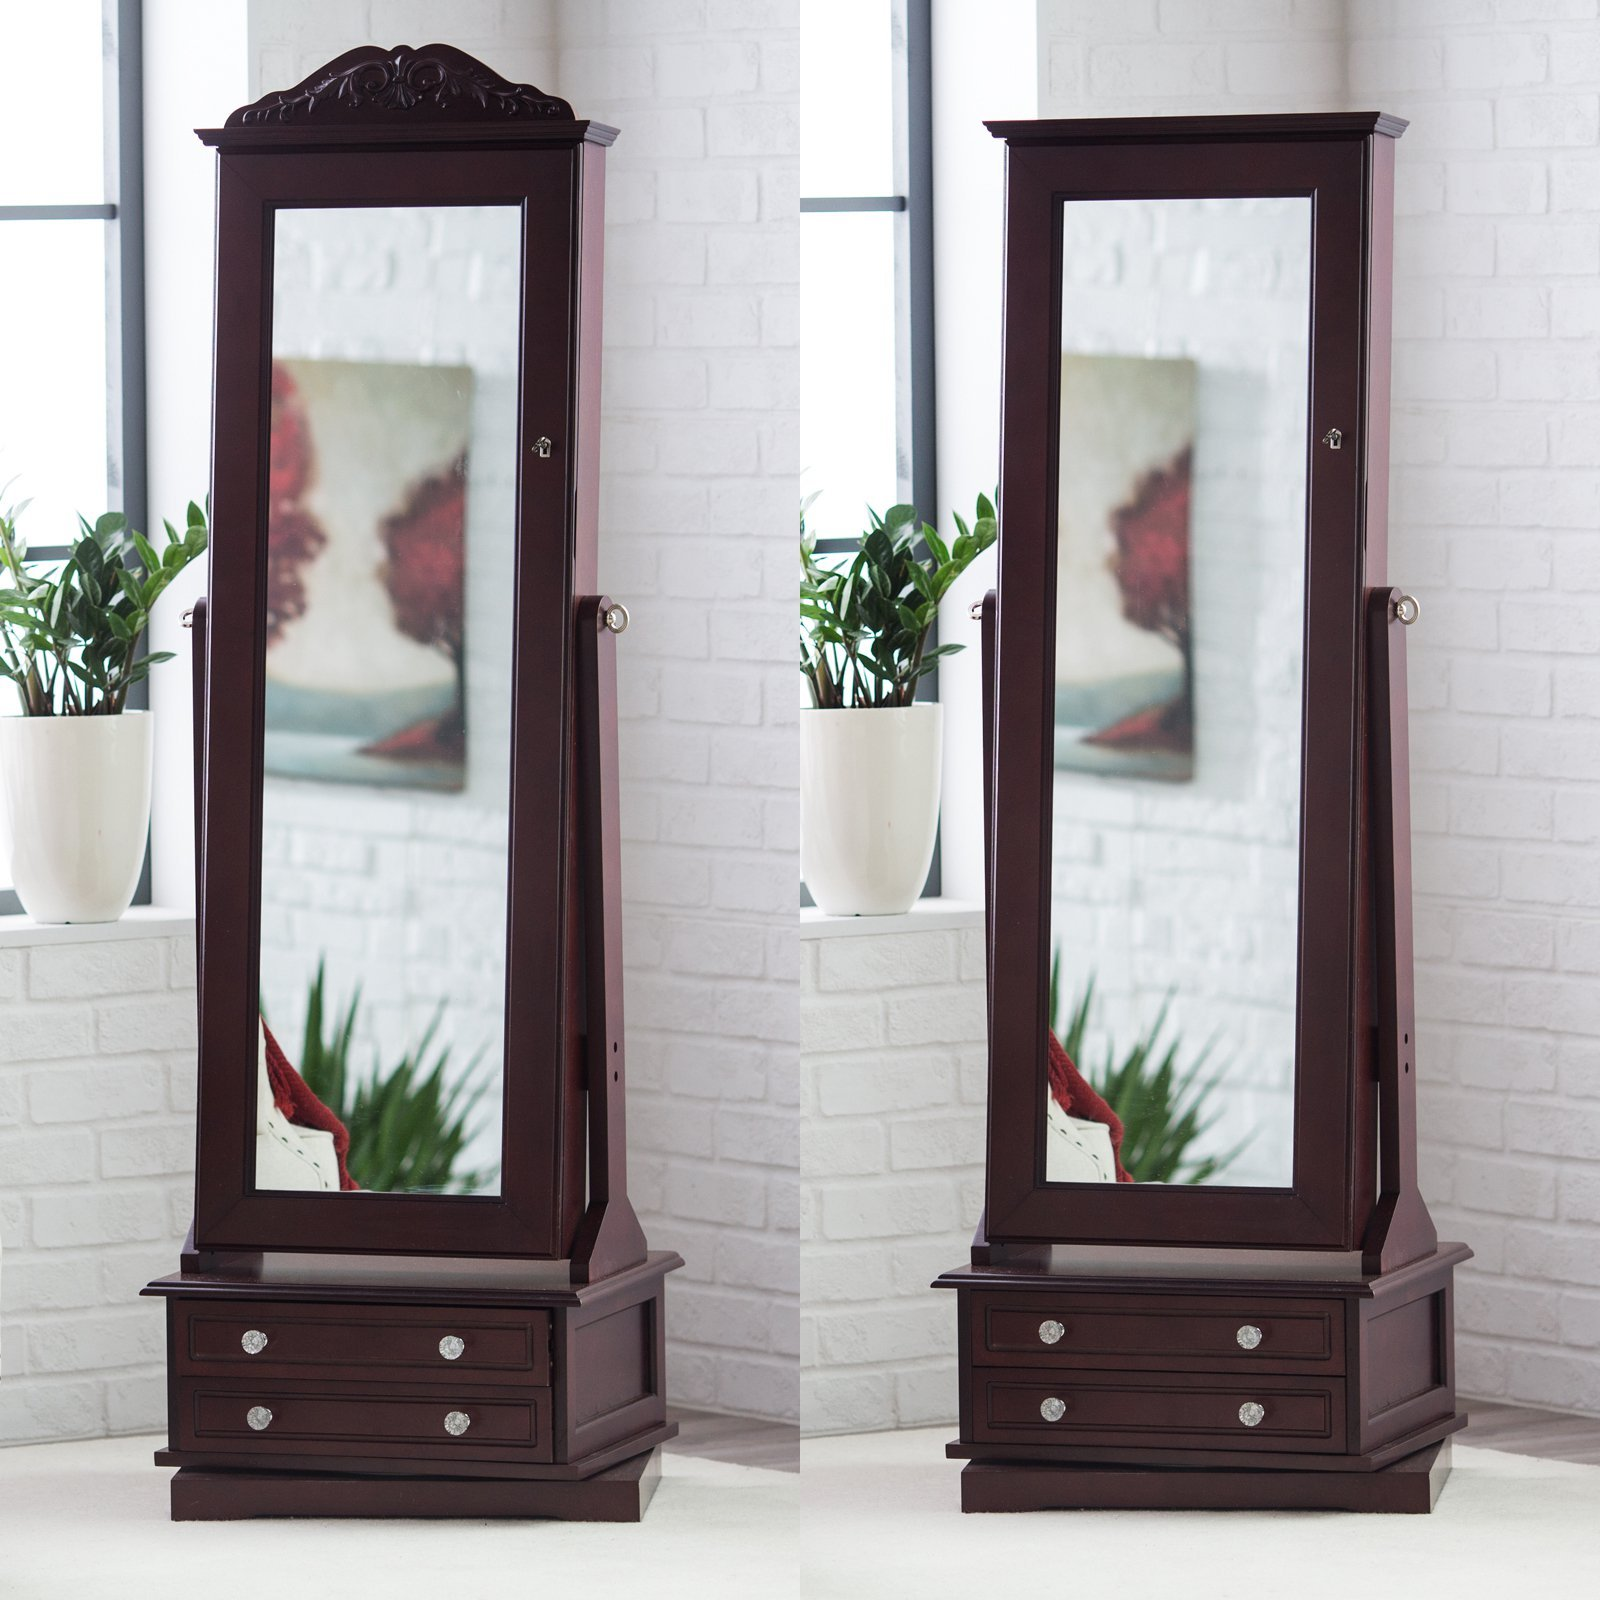 Cheval mirror jewelry armoire swivel floor standing for Mirror jewelry cabinet